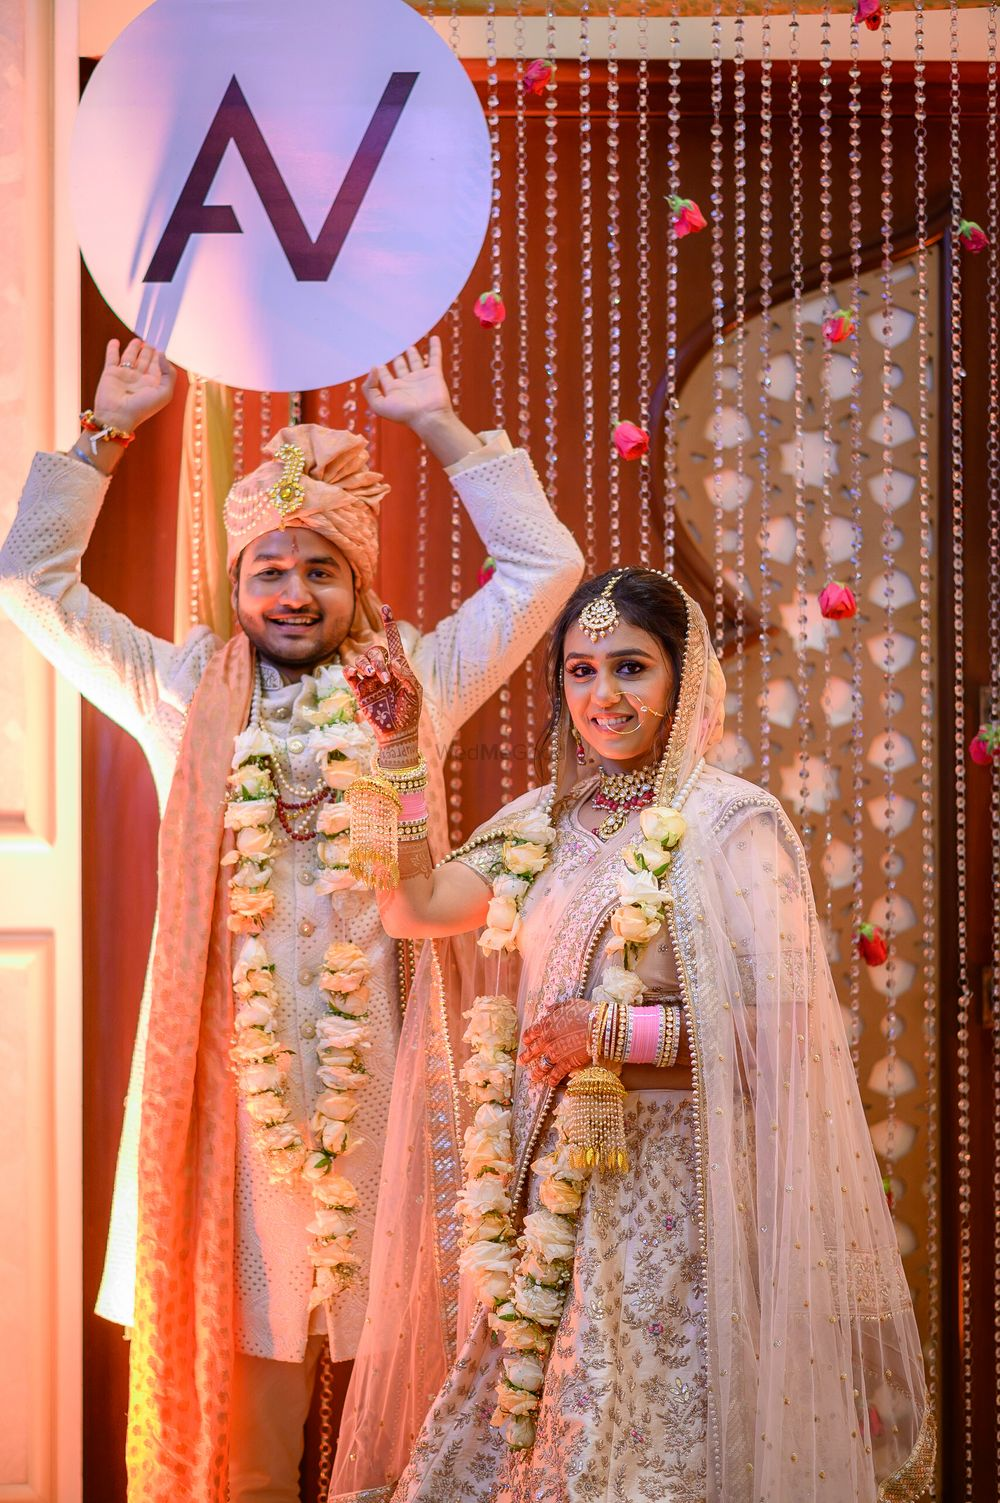 Photo From Anupreet & Vibhash - By The Wedding Psalm